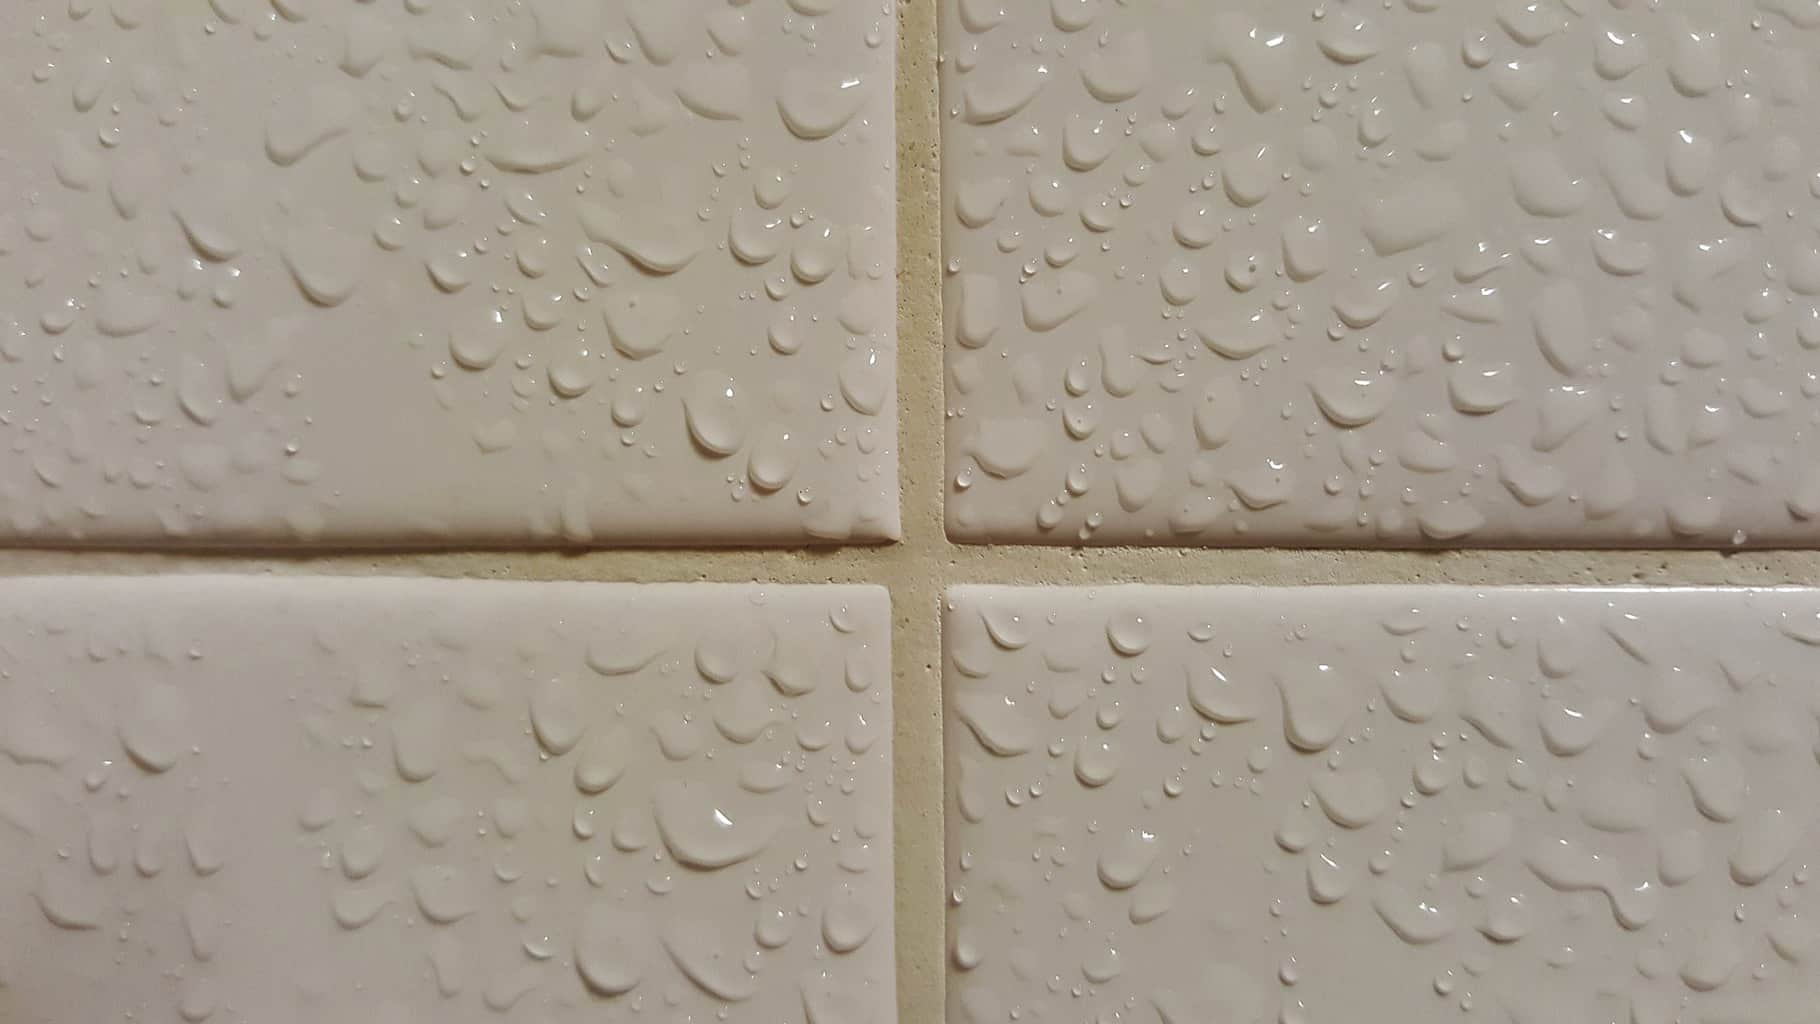 Wet shower tiles fixed with grout solution